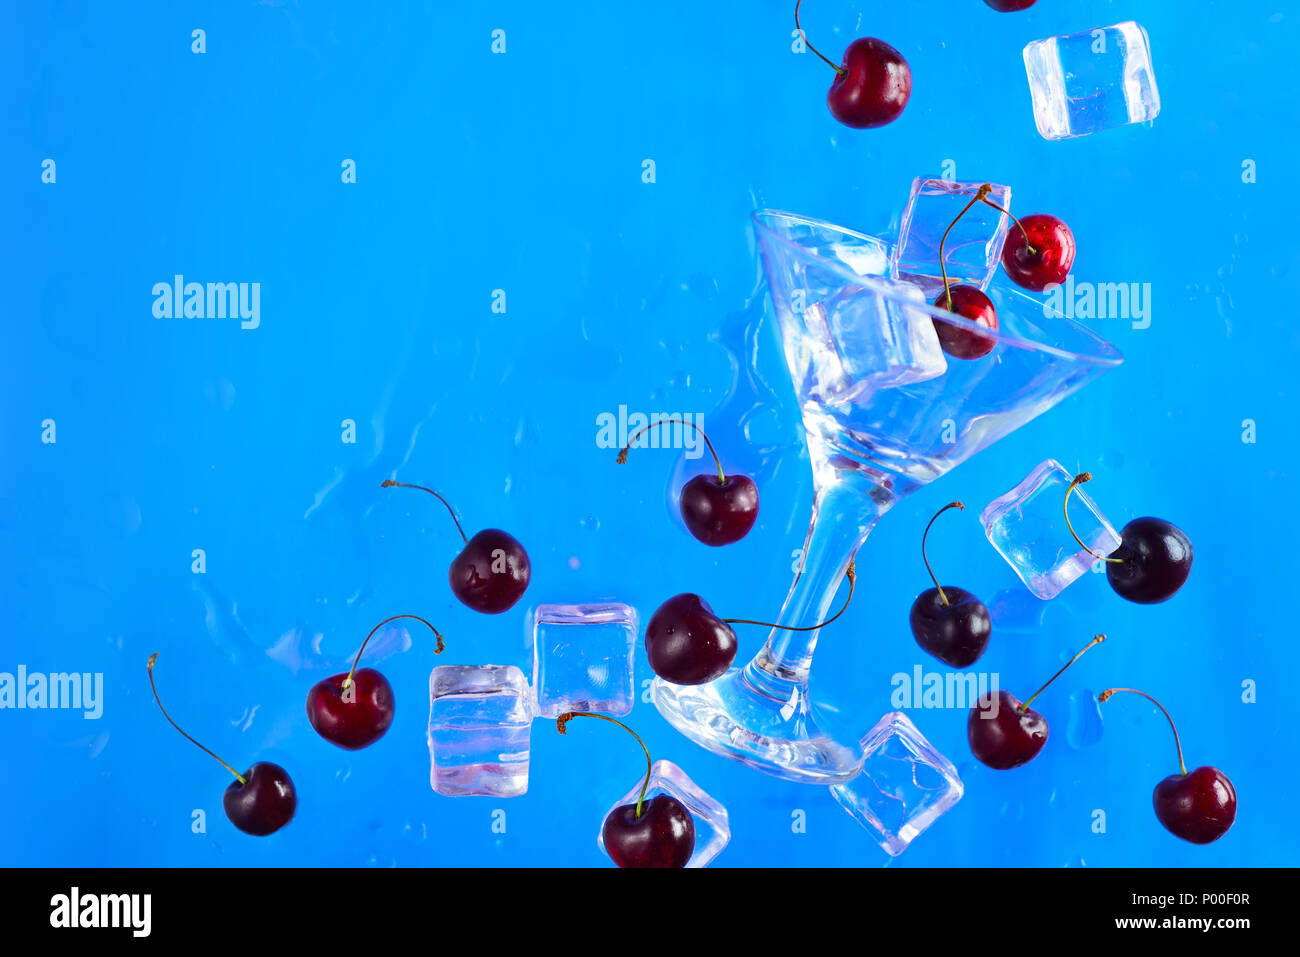 Martini glass with ice cubes and cherries on a bright blue background with copy space. Refreshing cold drink concept flat lay. - Stock Image